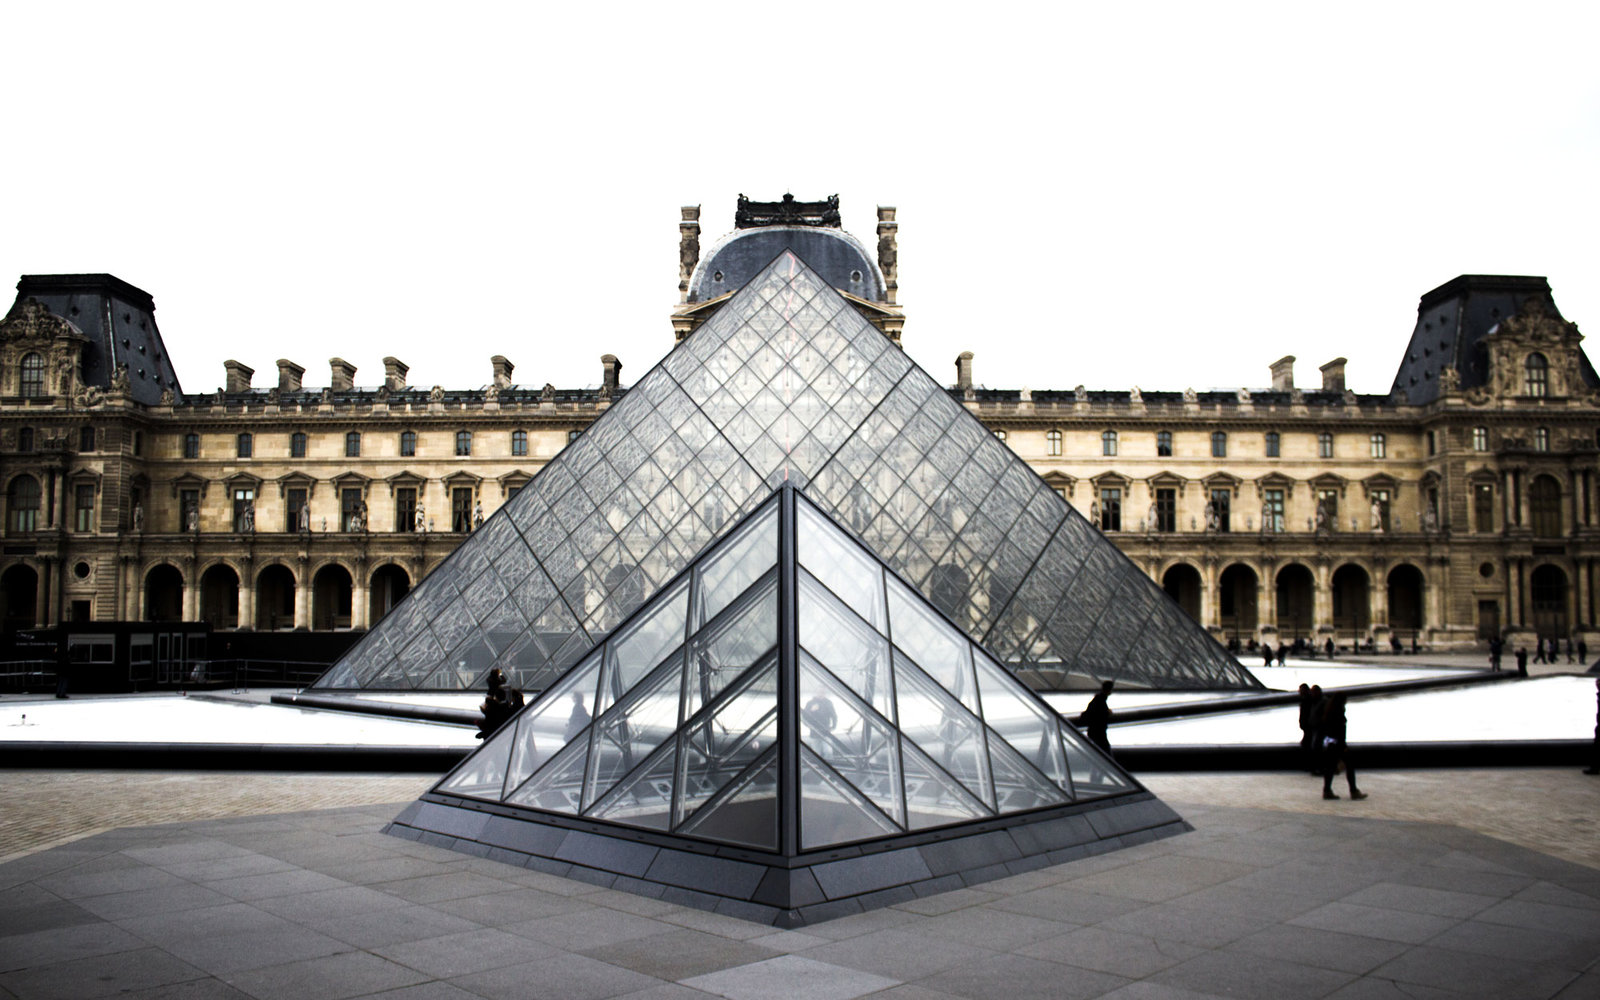 「the louvre museum」の画像検索結果